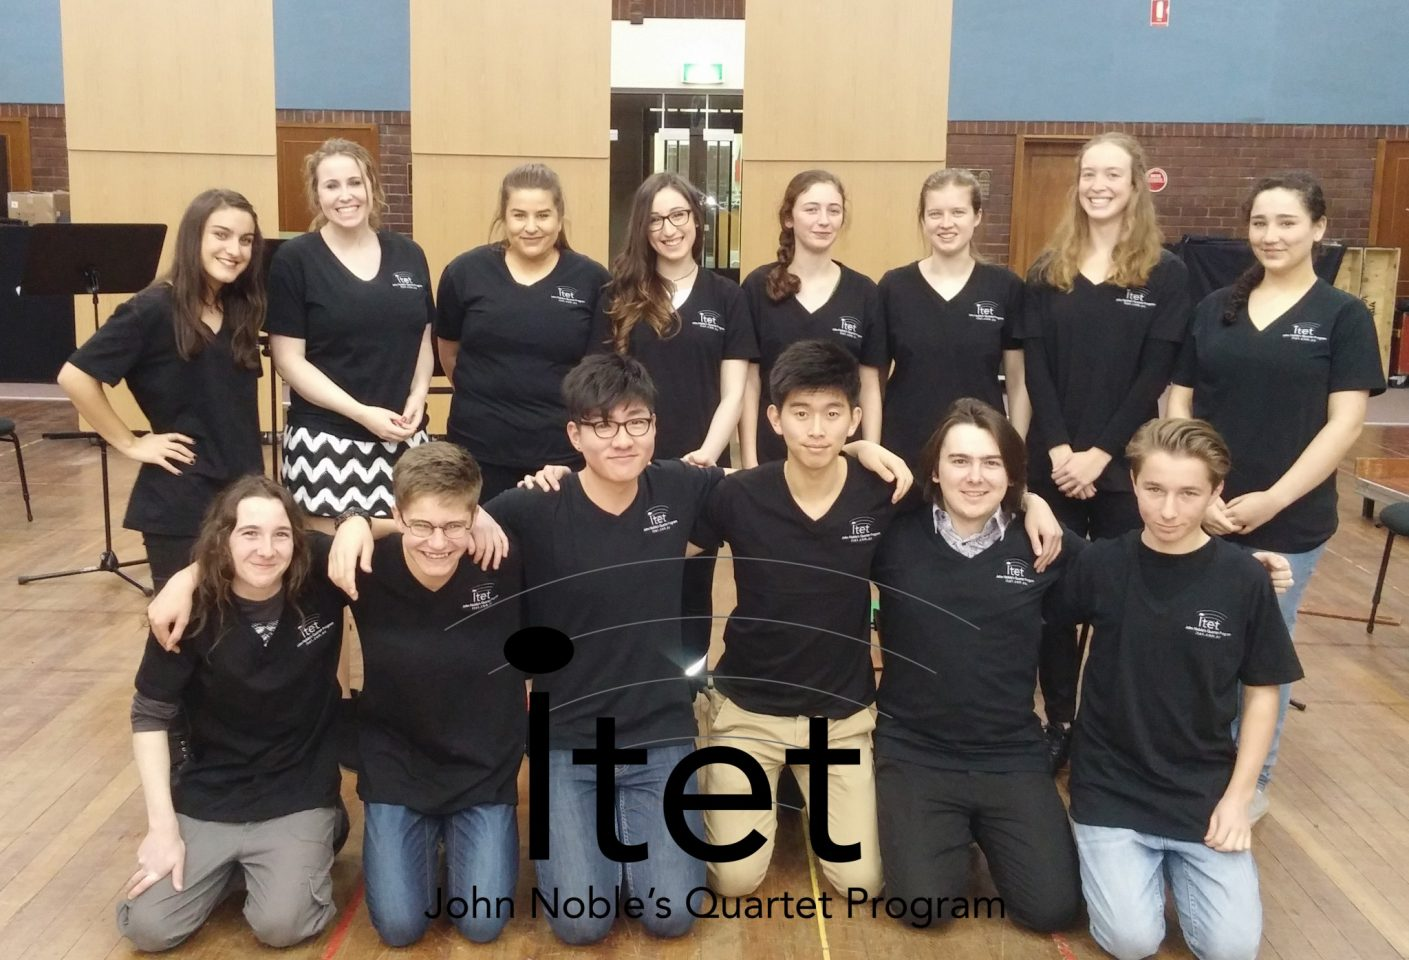 Itet - John Noble's Quartet Program